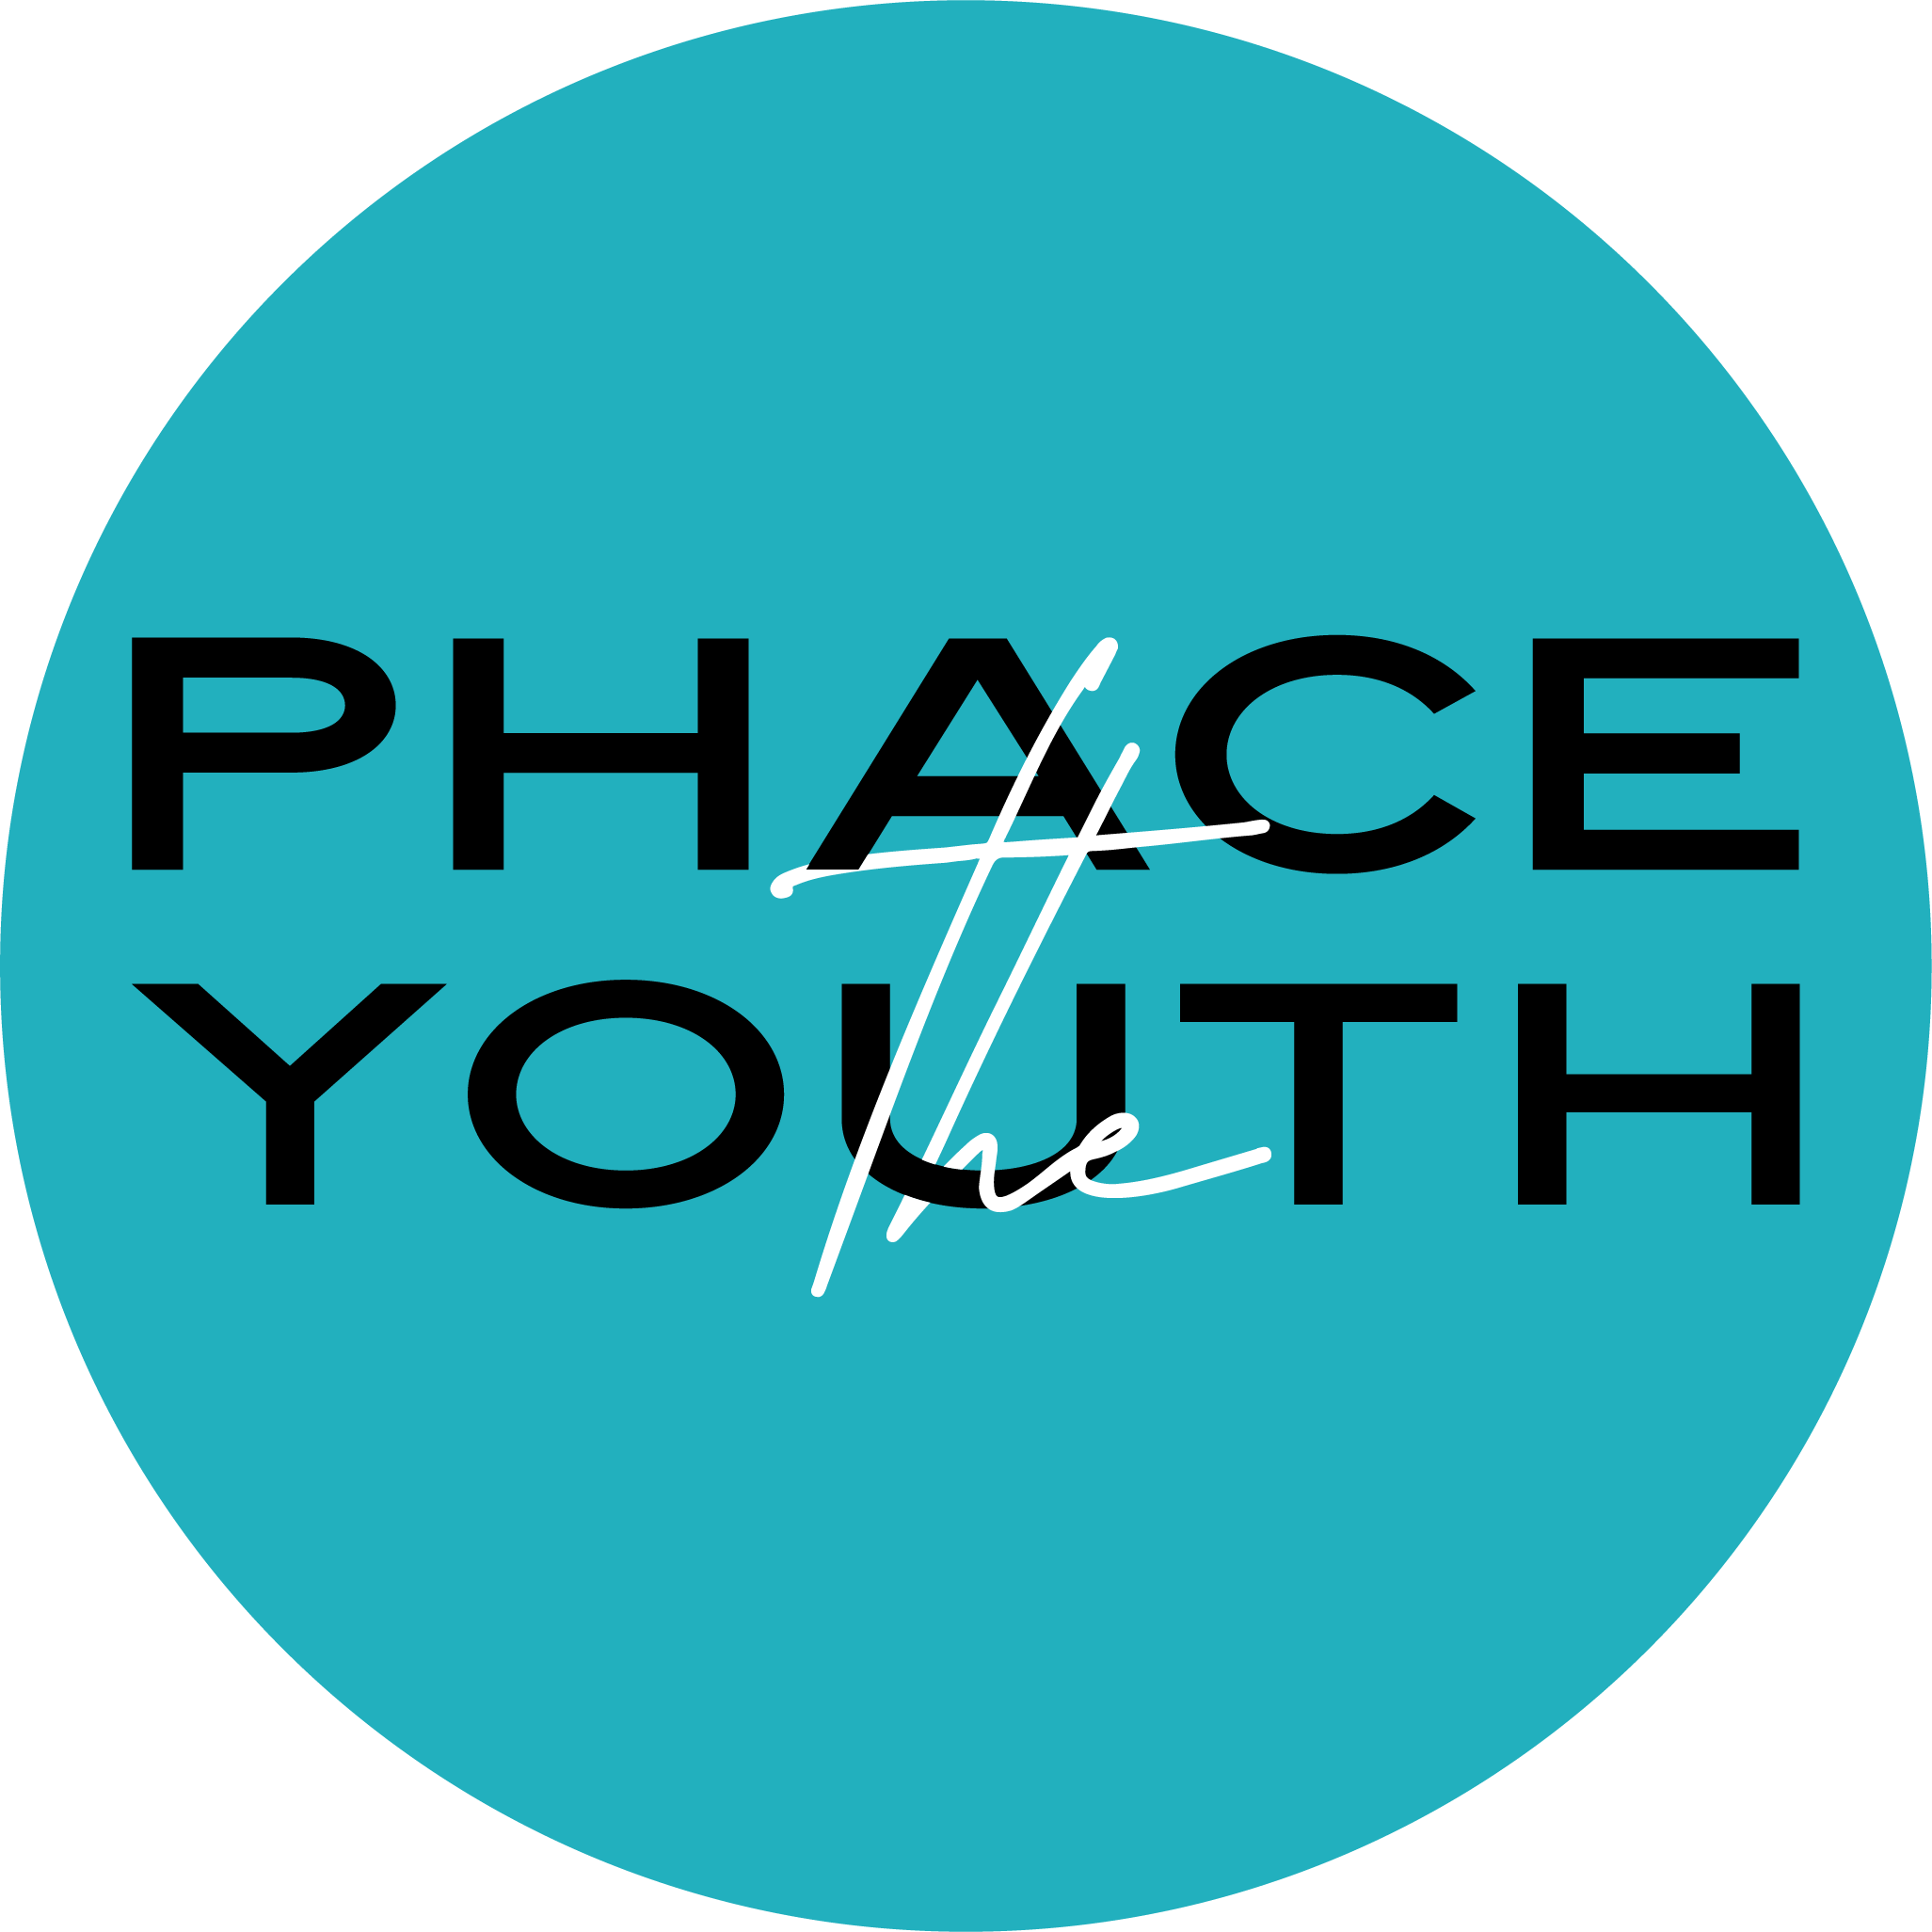 PHACE THE YOUTH